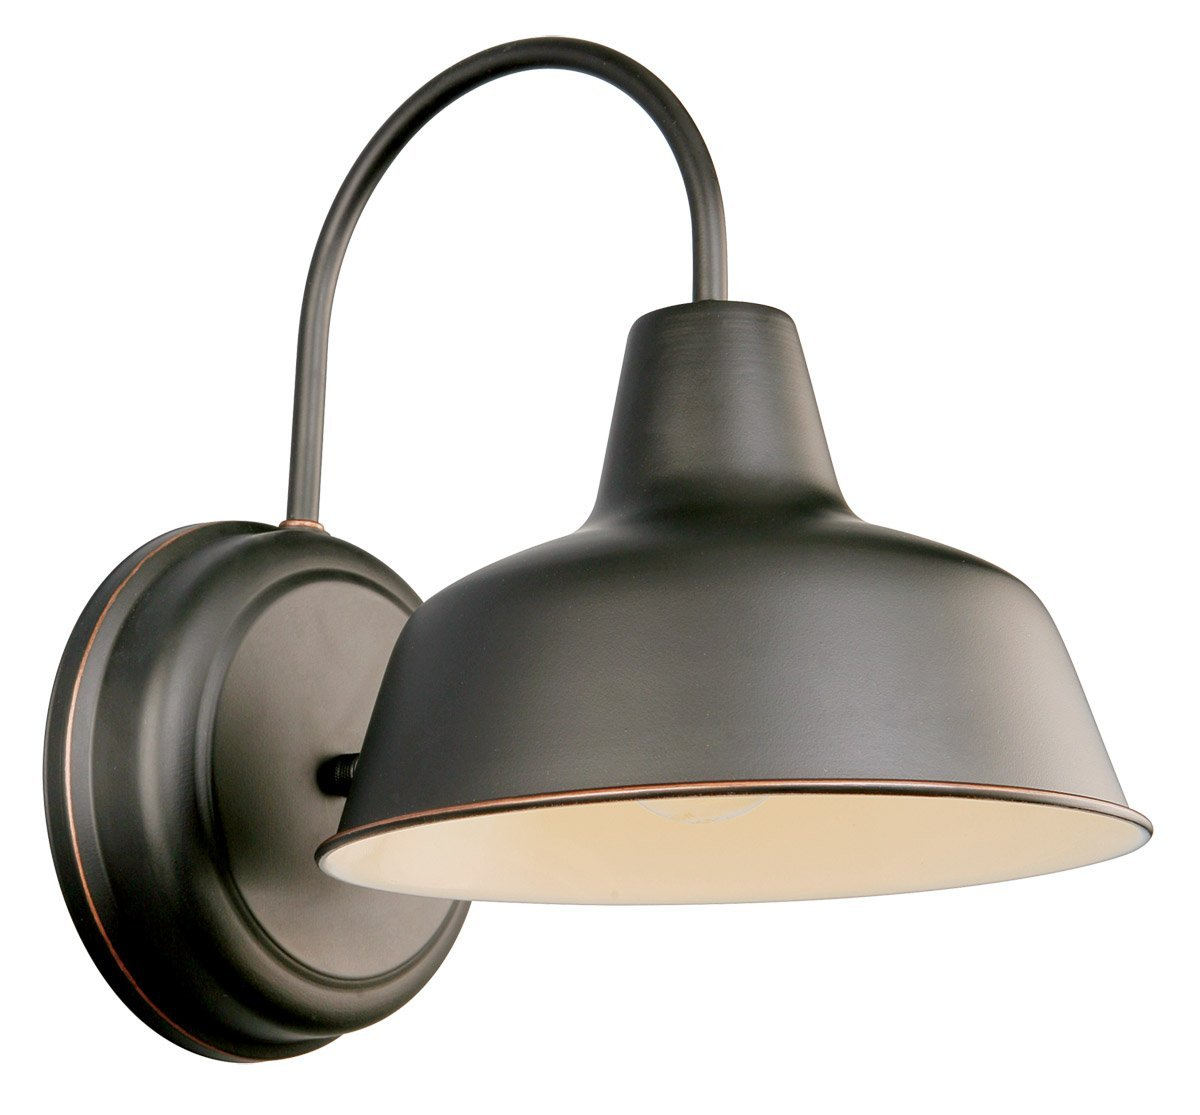 Farmhouse Light Fixtures Under 200 On Amazon Southern Made Simple